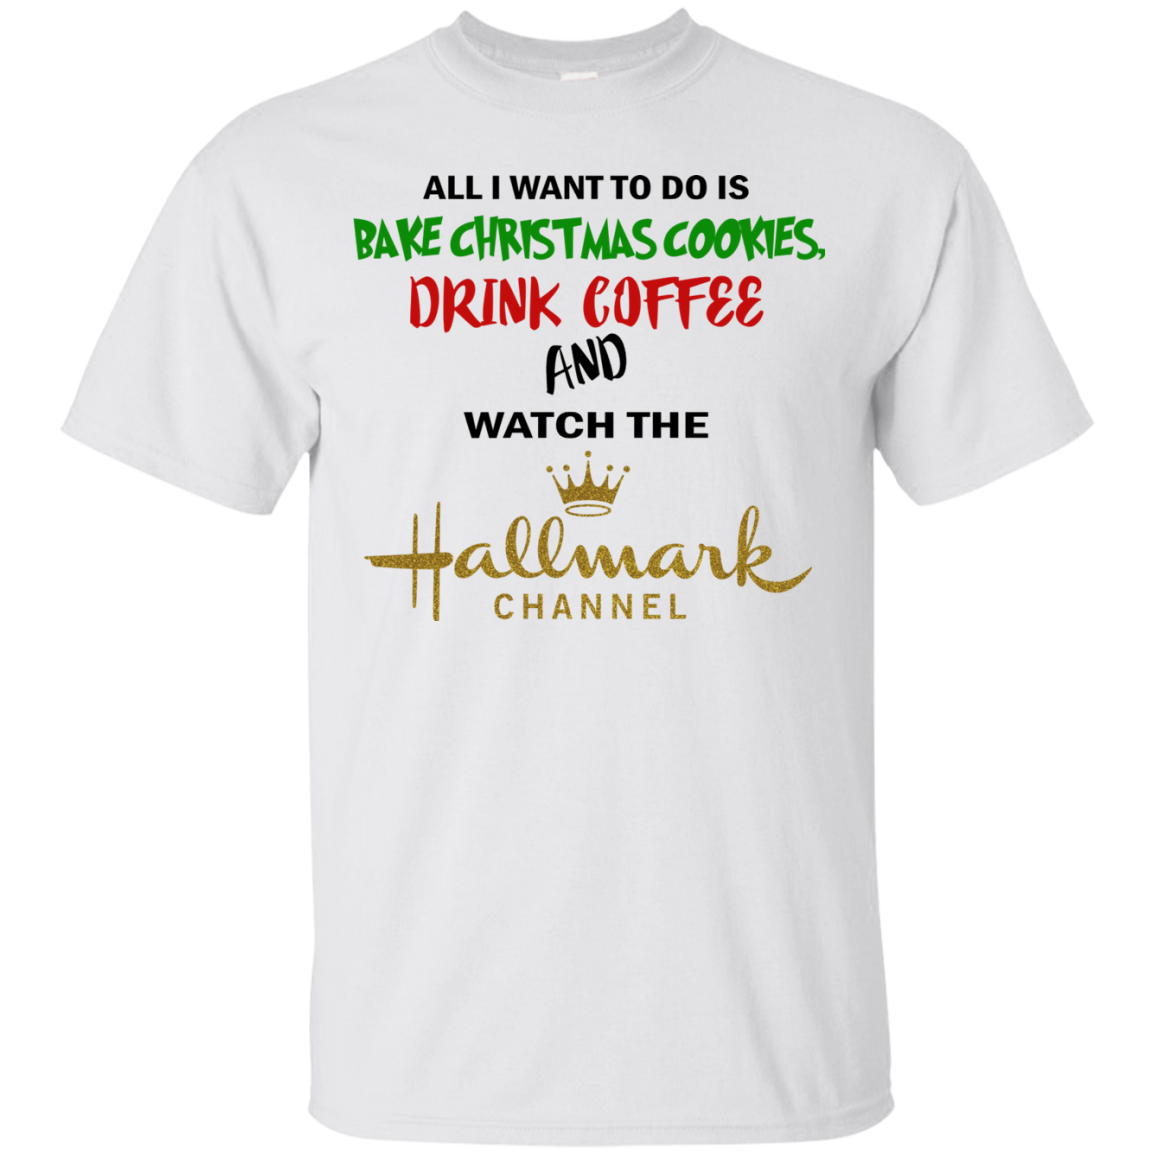 All I Want To Do Is Bake Christmas Cookies And Watch The Hallmark Channel Shirt Hallmark Channel Christmas Shirts Christmas Cookies